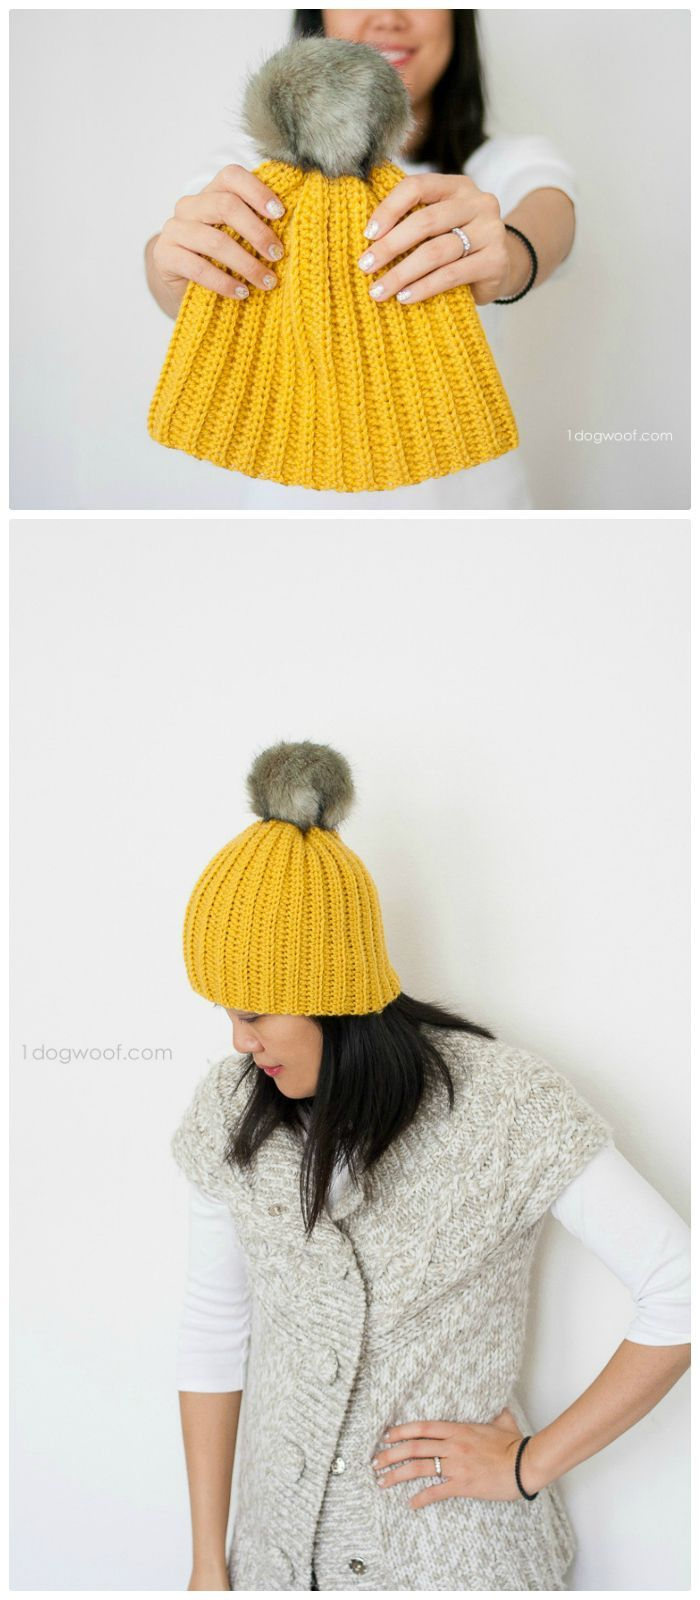 1356 best Gorros images on Pinterest | Crochet hats, Beanies and ...